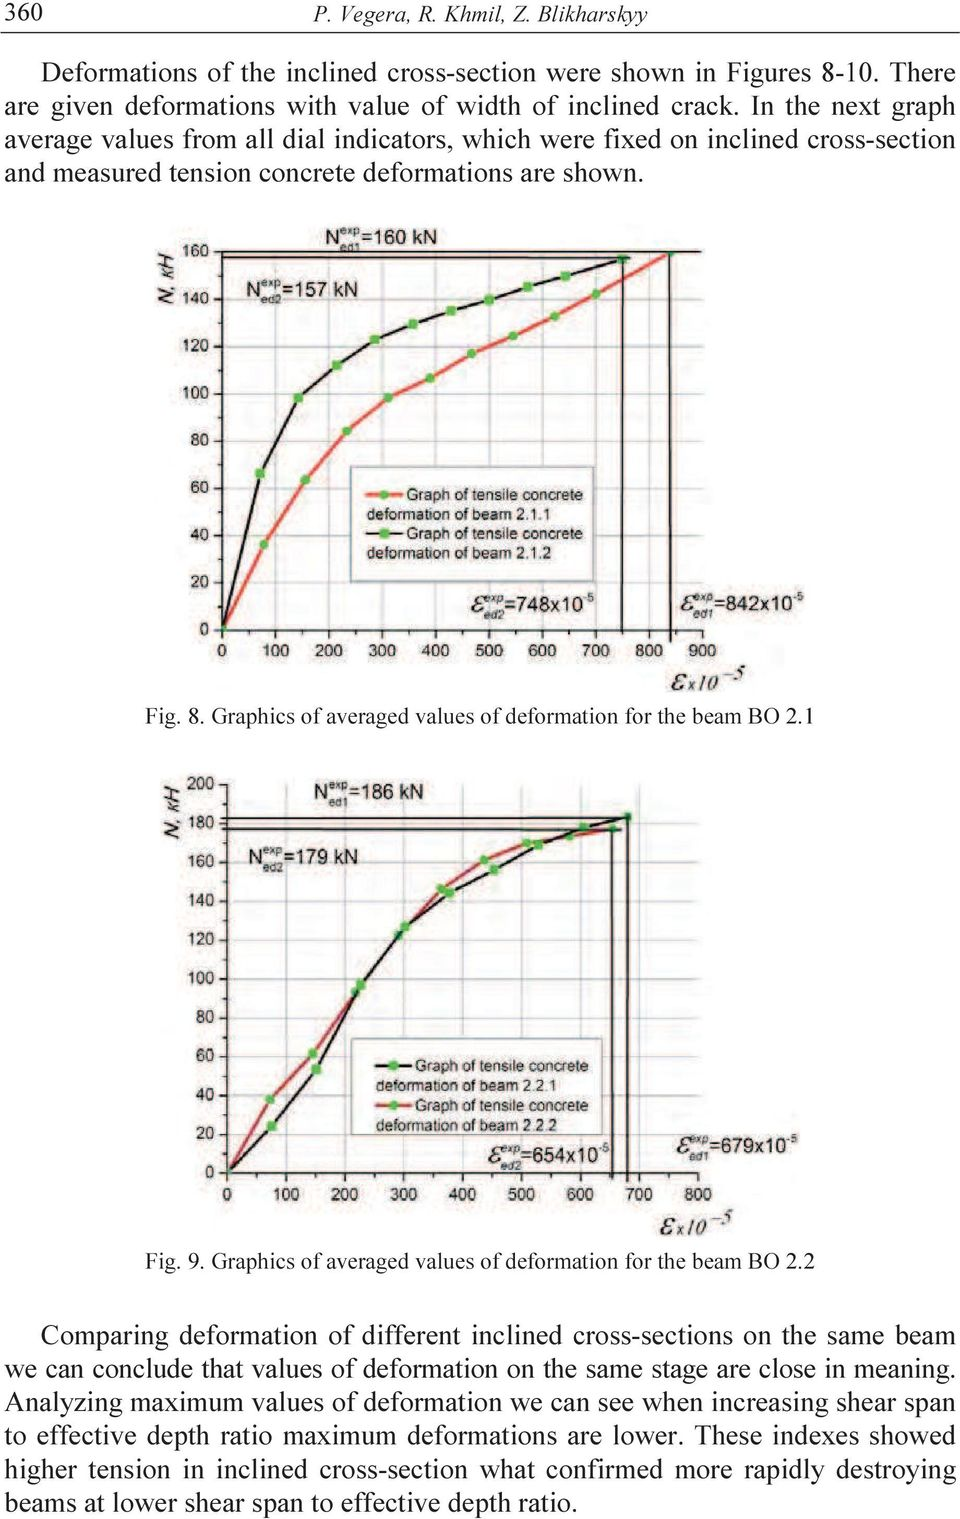 THE SHEAR CAPACITY OF REINFORCED CONCRETE BEAMS WITH